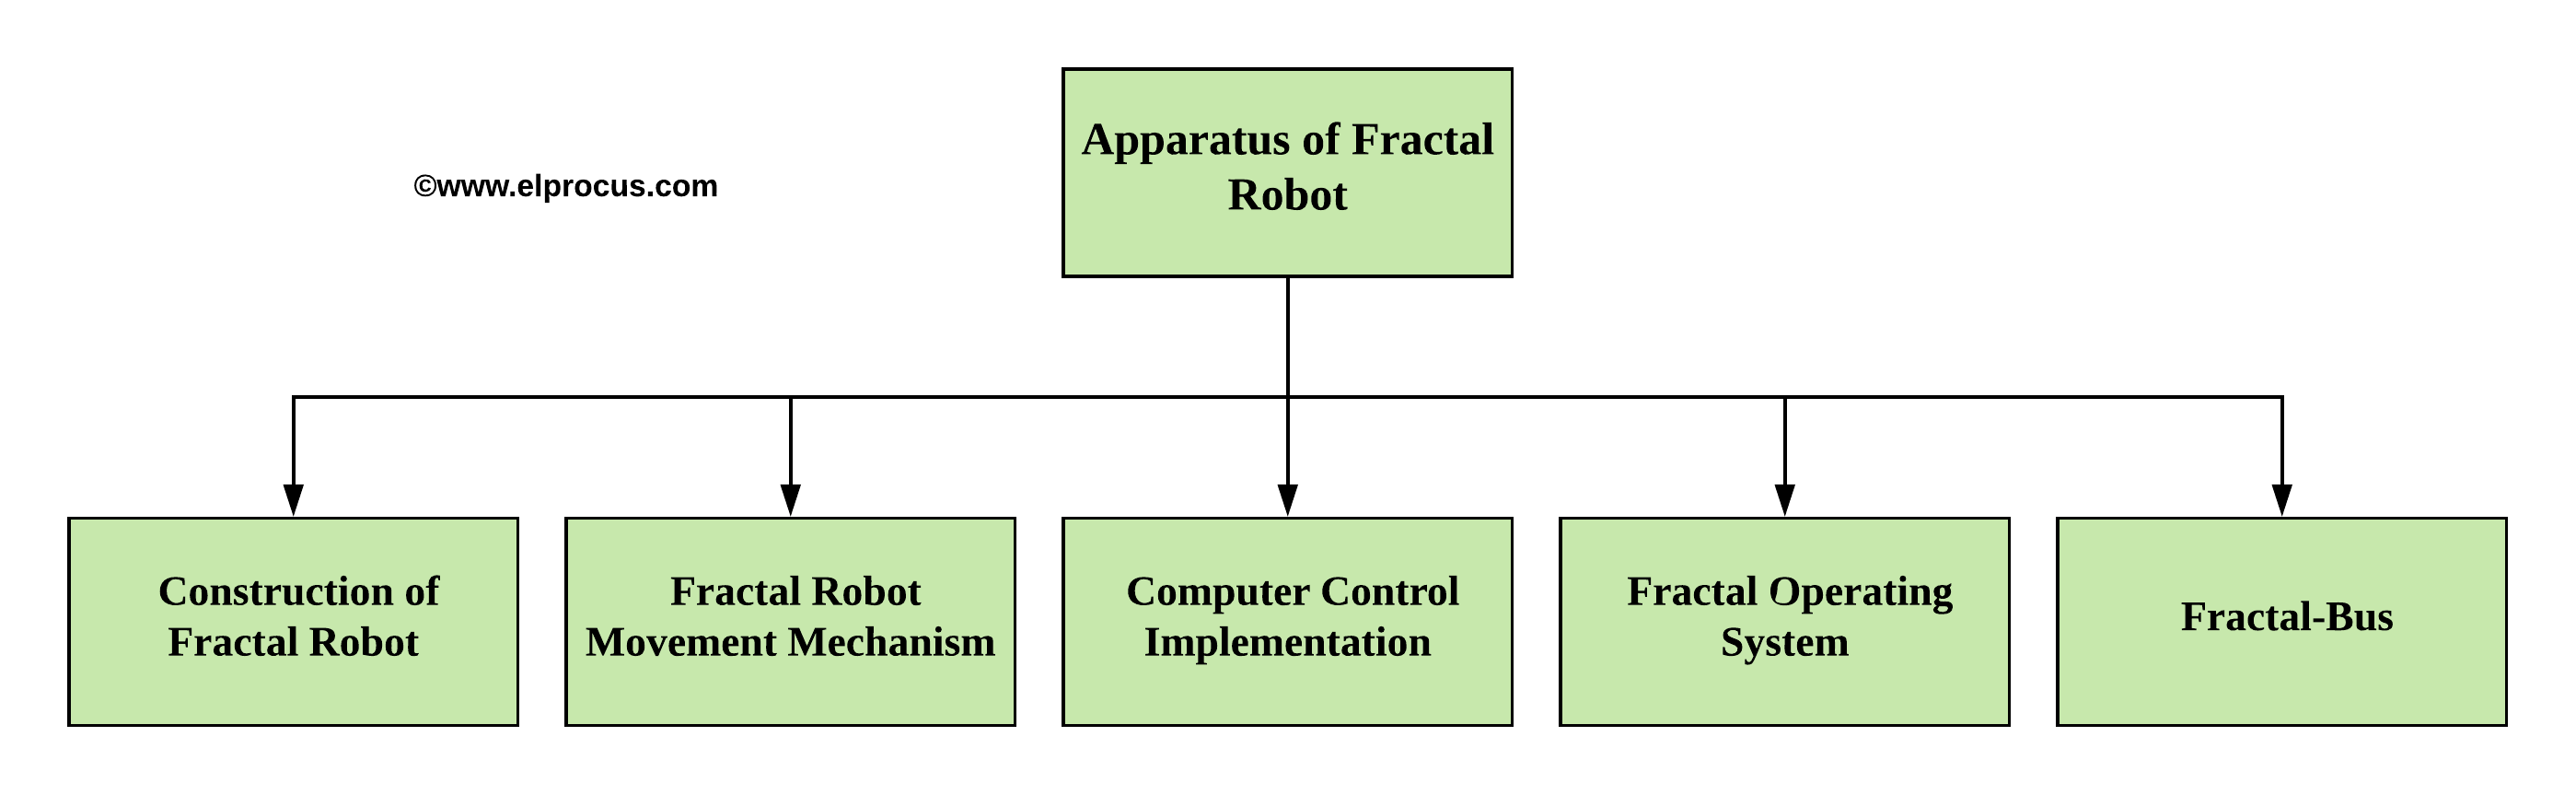 Apparatus of Fractal Robot